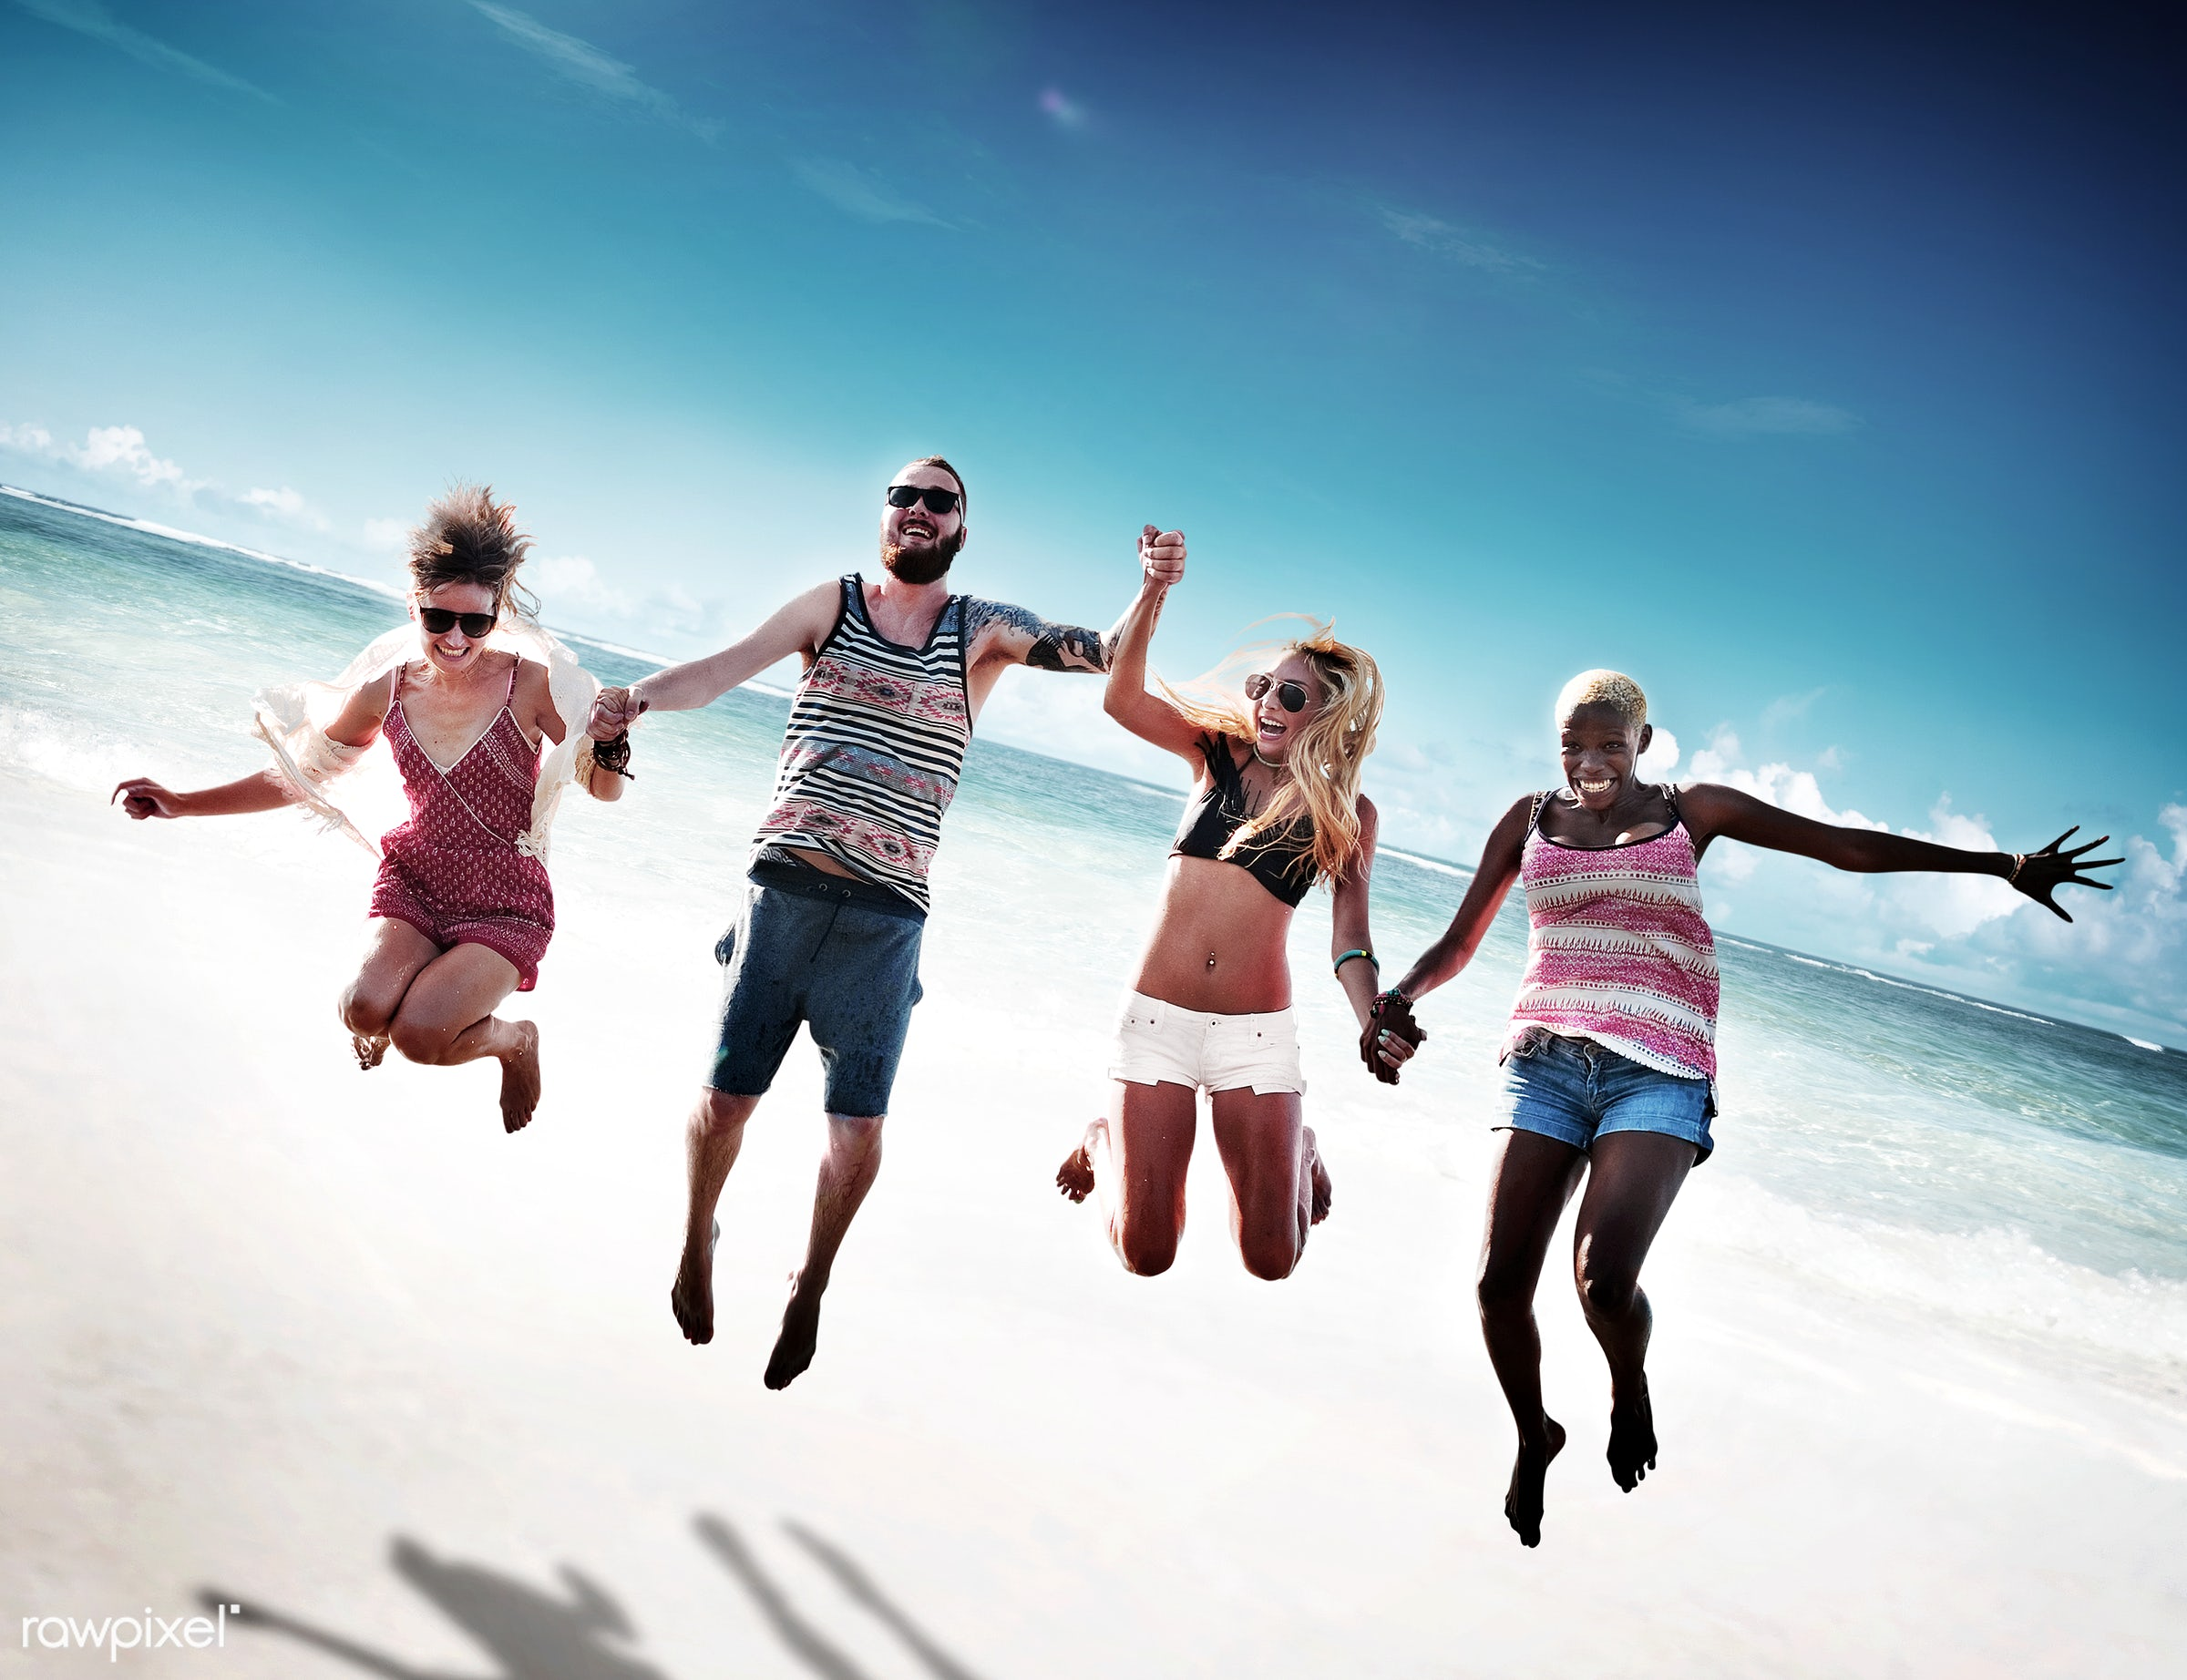 jumping, action, african descent, asian ethnicity, beach, bonding, cheerful, chilling, colorful, day, diverse, diversity,...